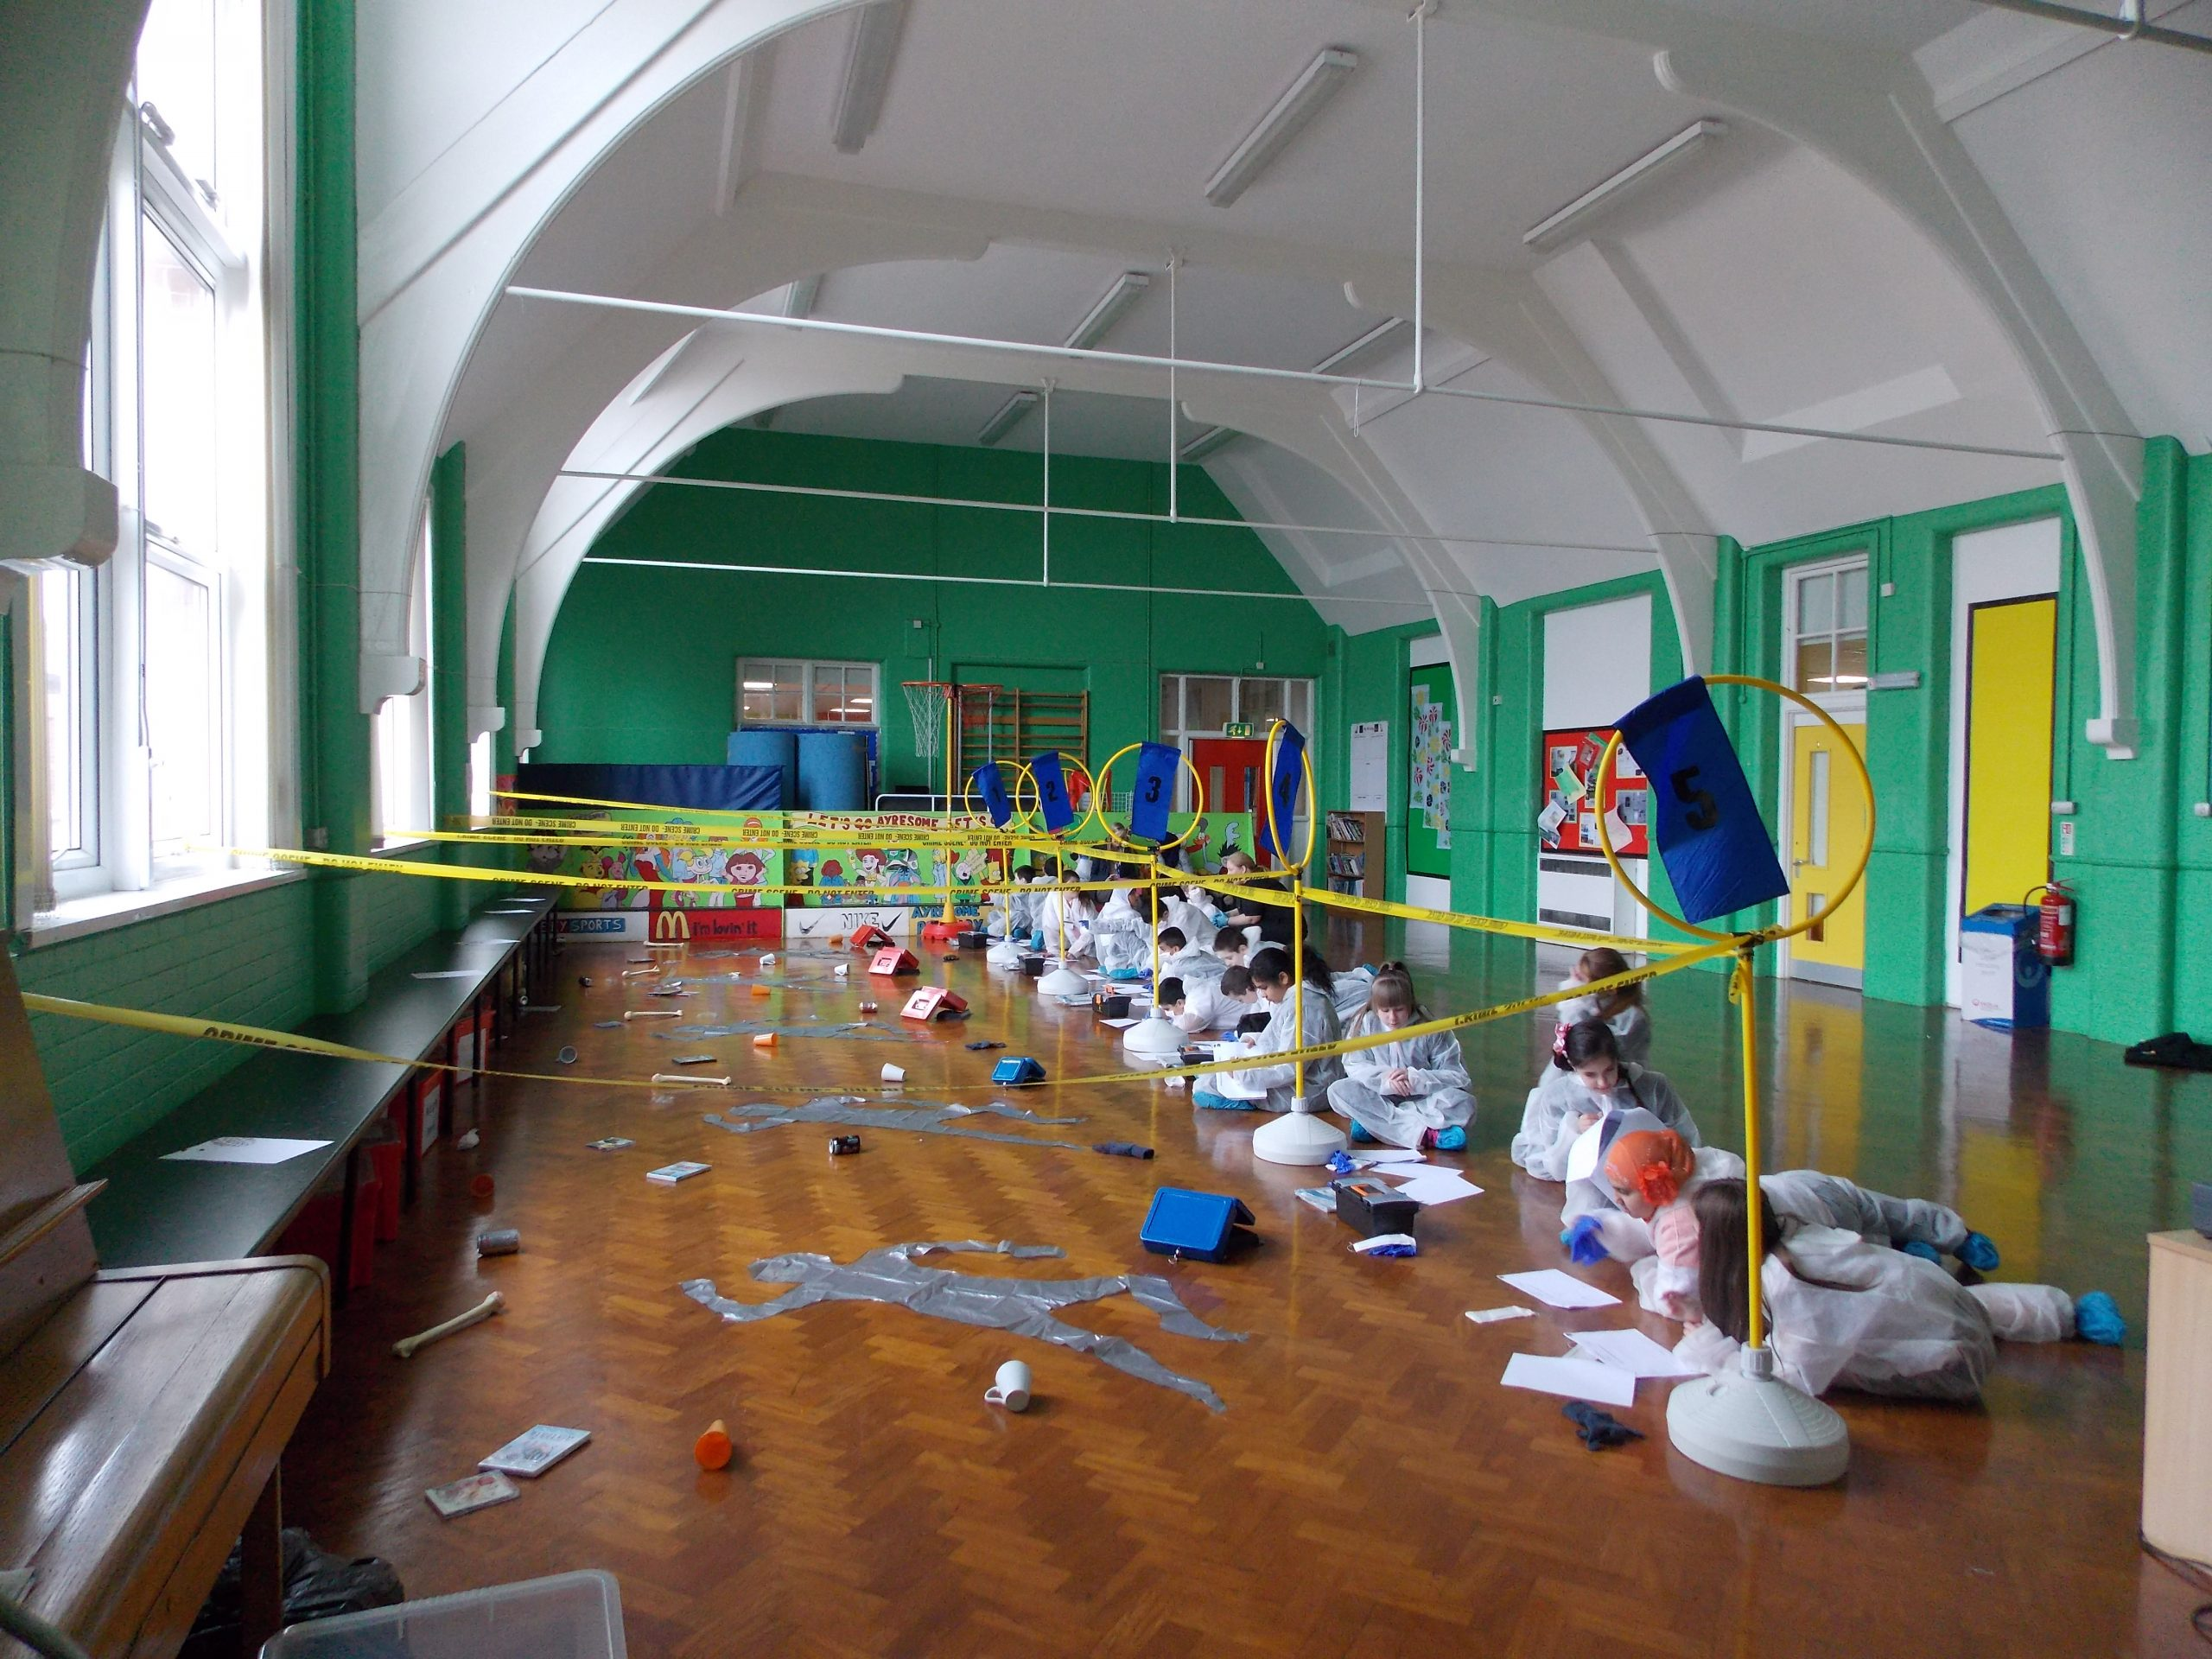 CSI Training and Events - CSI Educational Workshops - Children drawing a staged crime scene at a school event